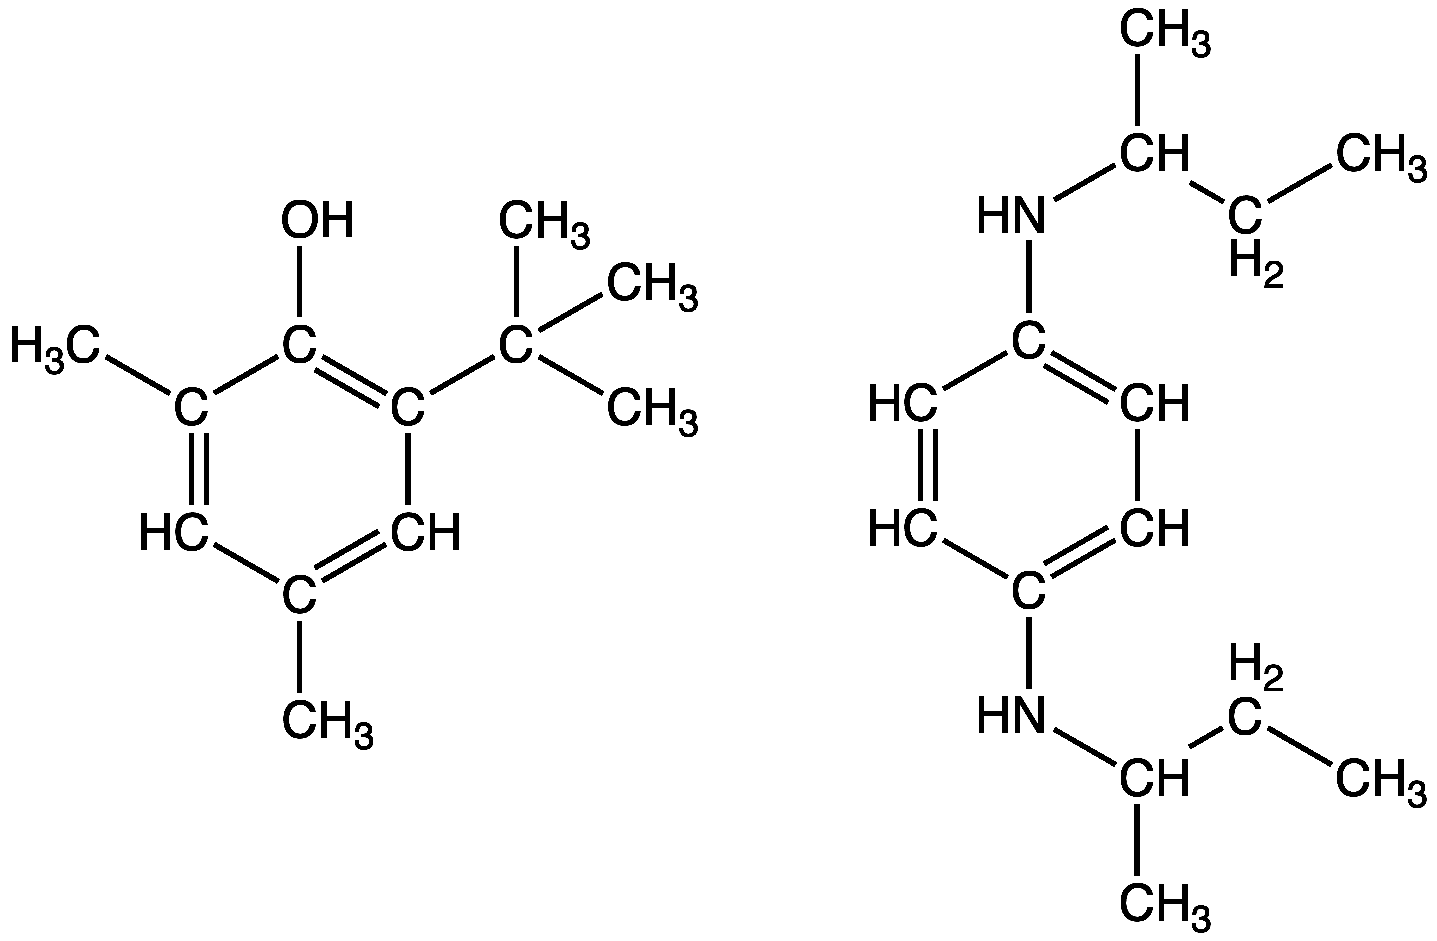 Substituted phenols and derivatives of phenylenediamine are common antioxidants used to inhibit gum formation in gasoline (petrol).